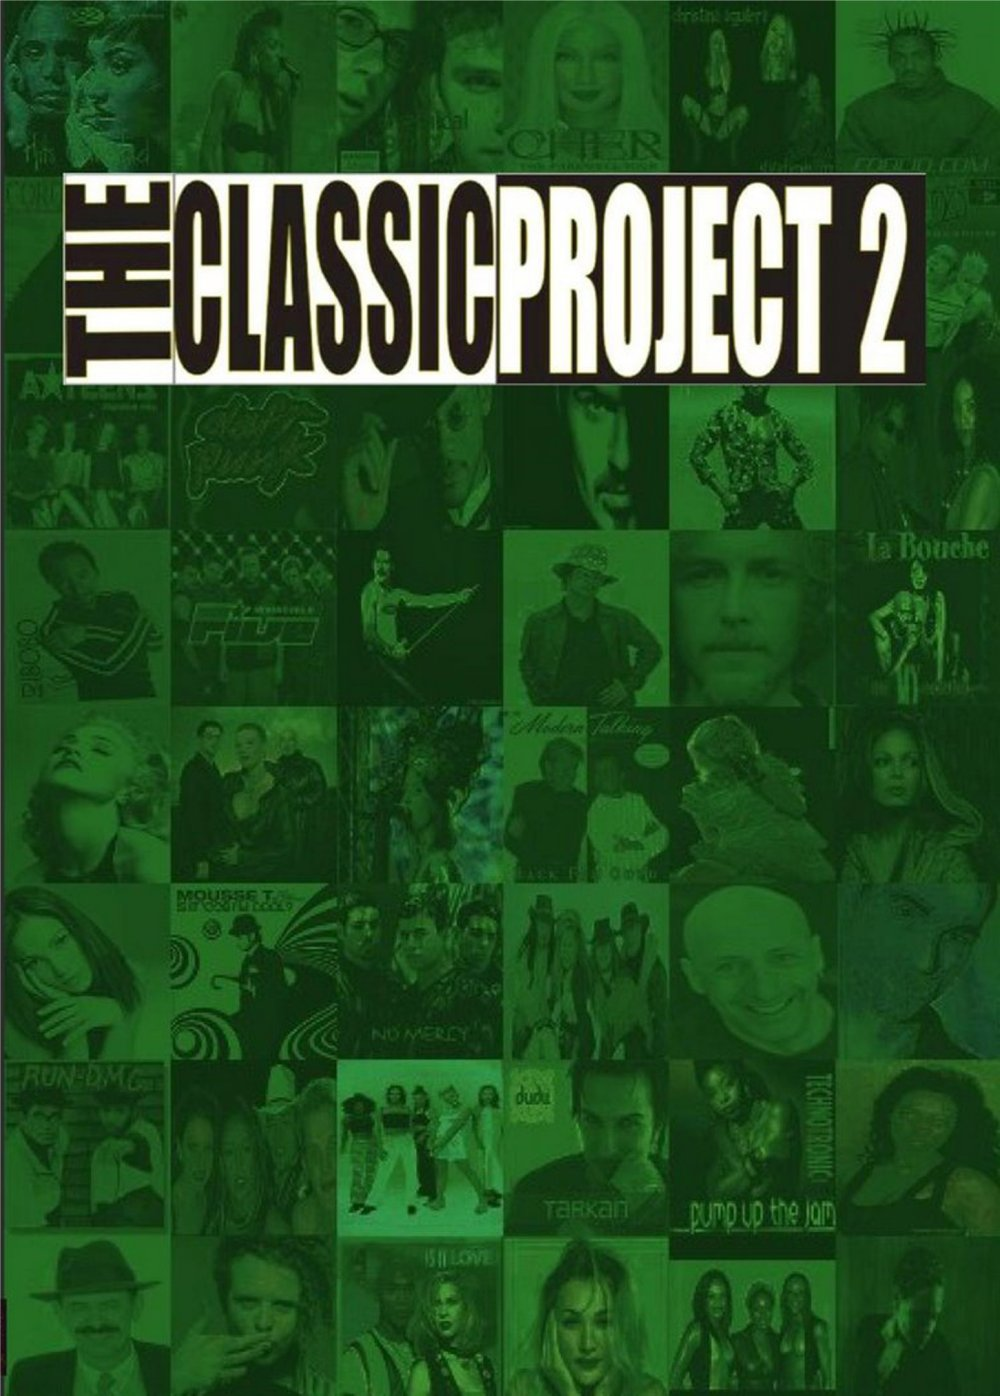 Carrete the classic project 02 pop euro house de los 90s for Classic house 90s